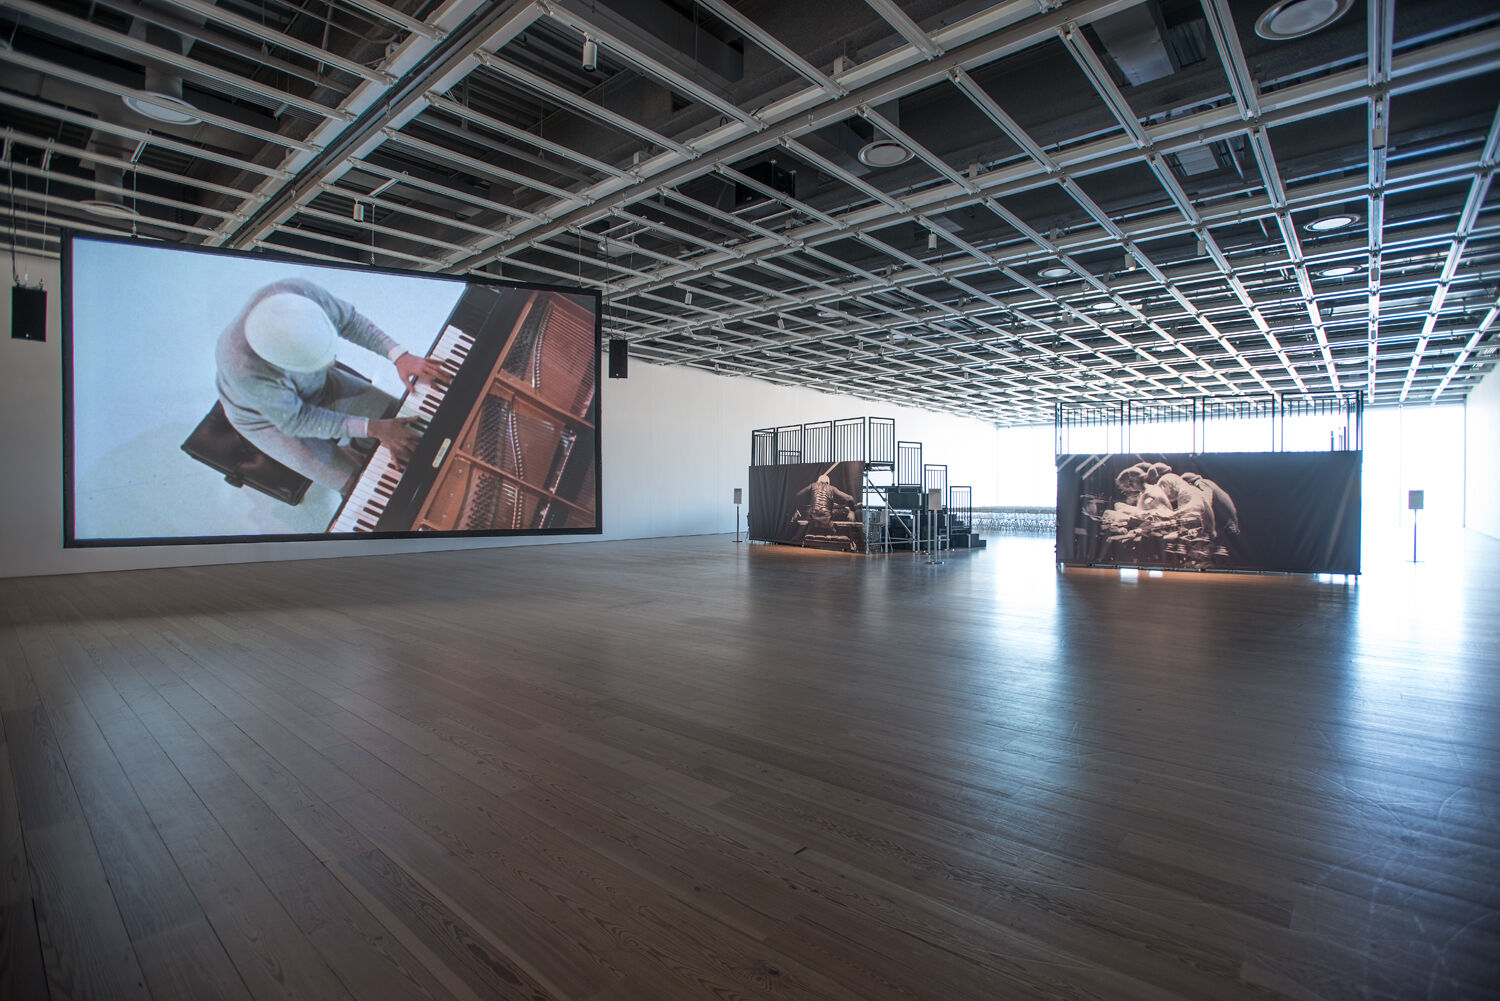 A gallery with a large screen.